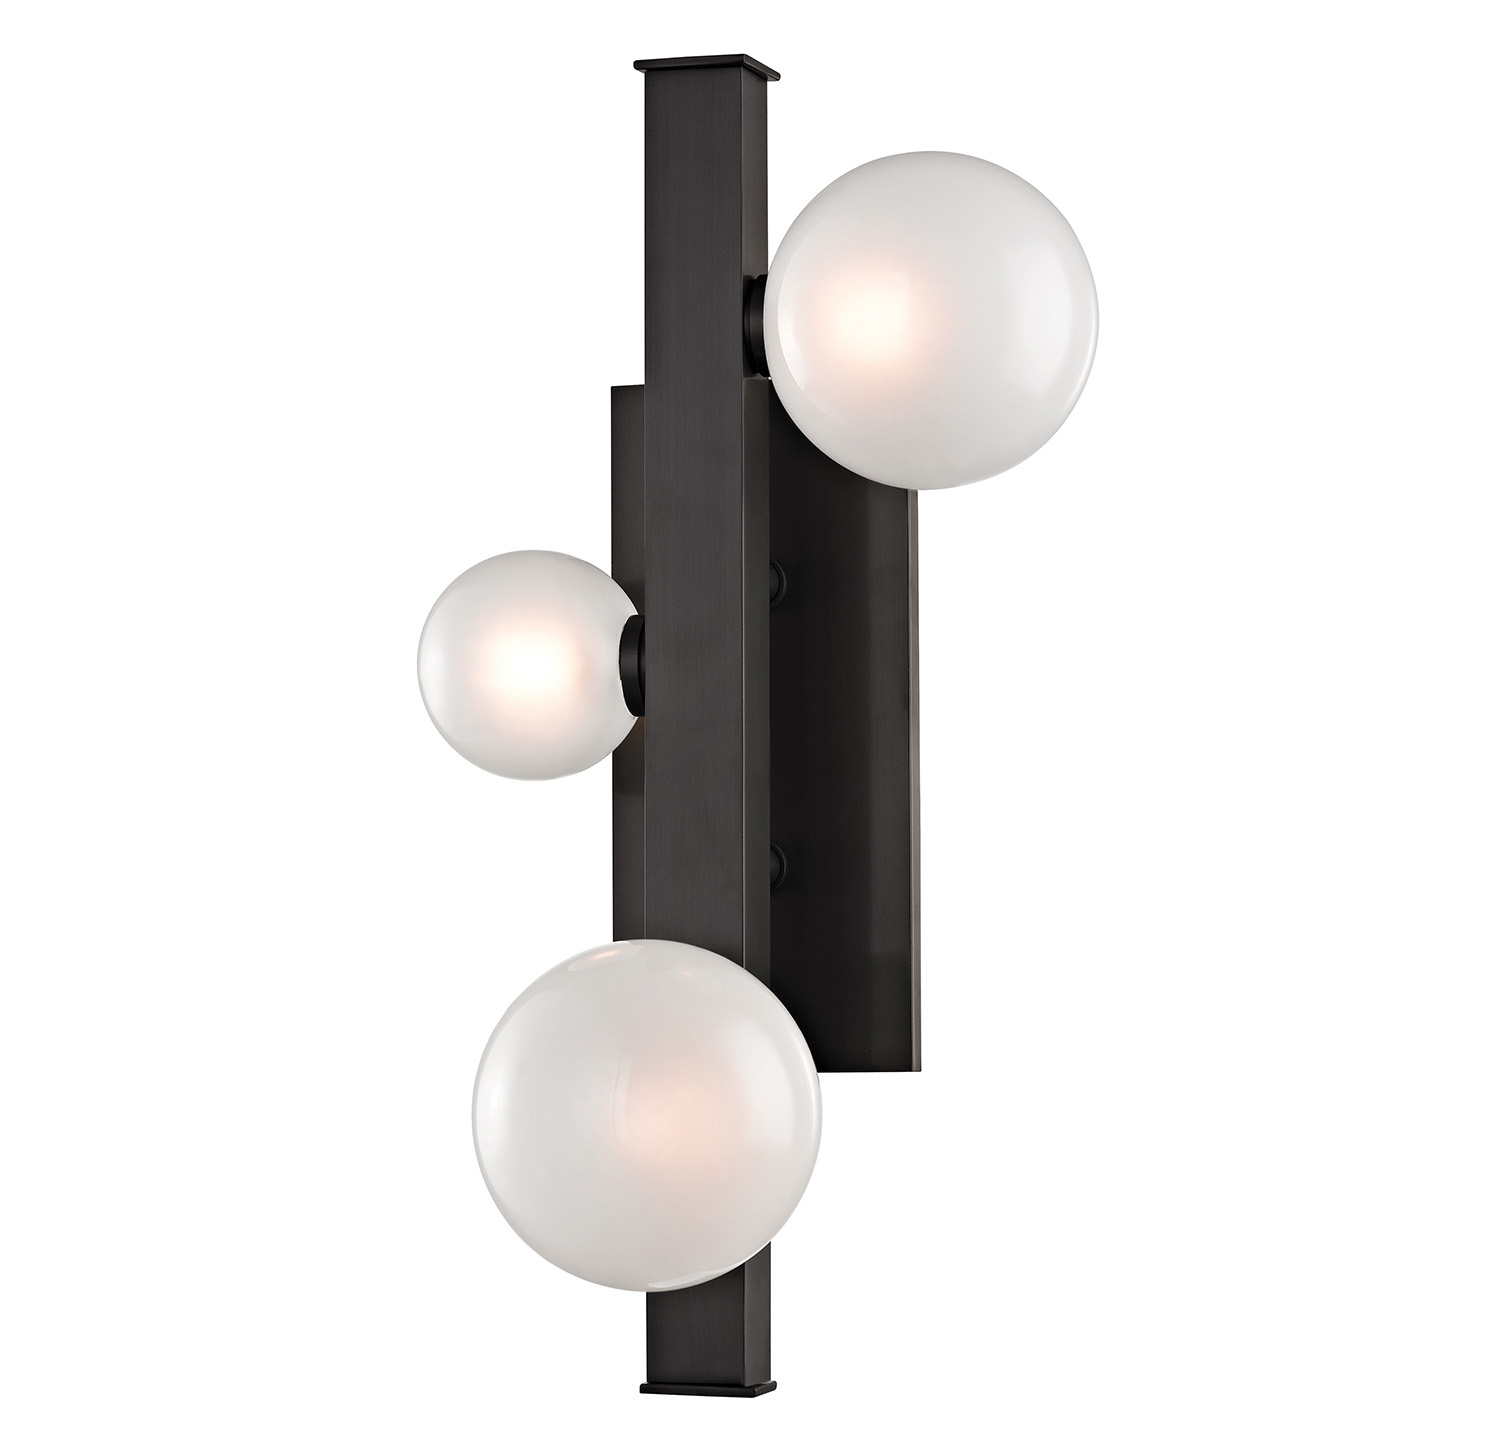 The fixture offers hand-blown glass spheres that gather around a singular metal beam, serving as an axis for the etched, glossy orbs of diffused LED light.